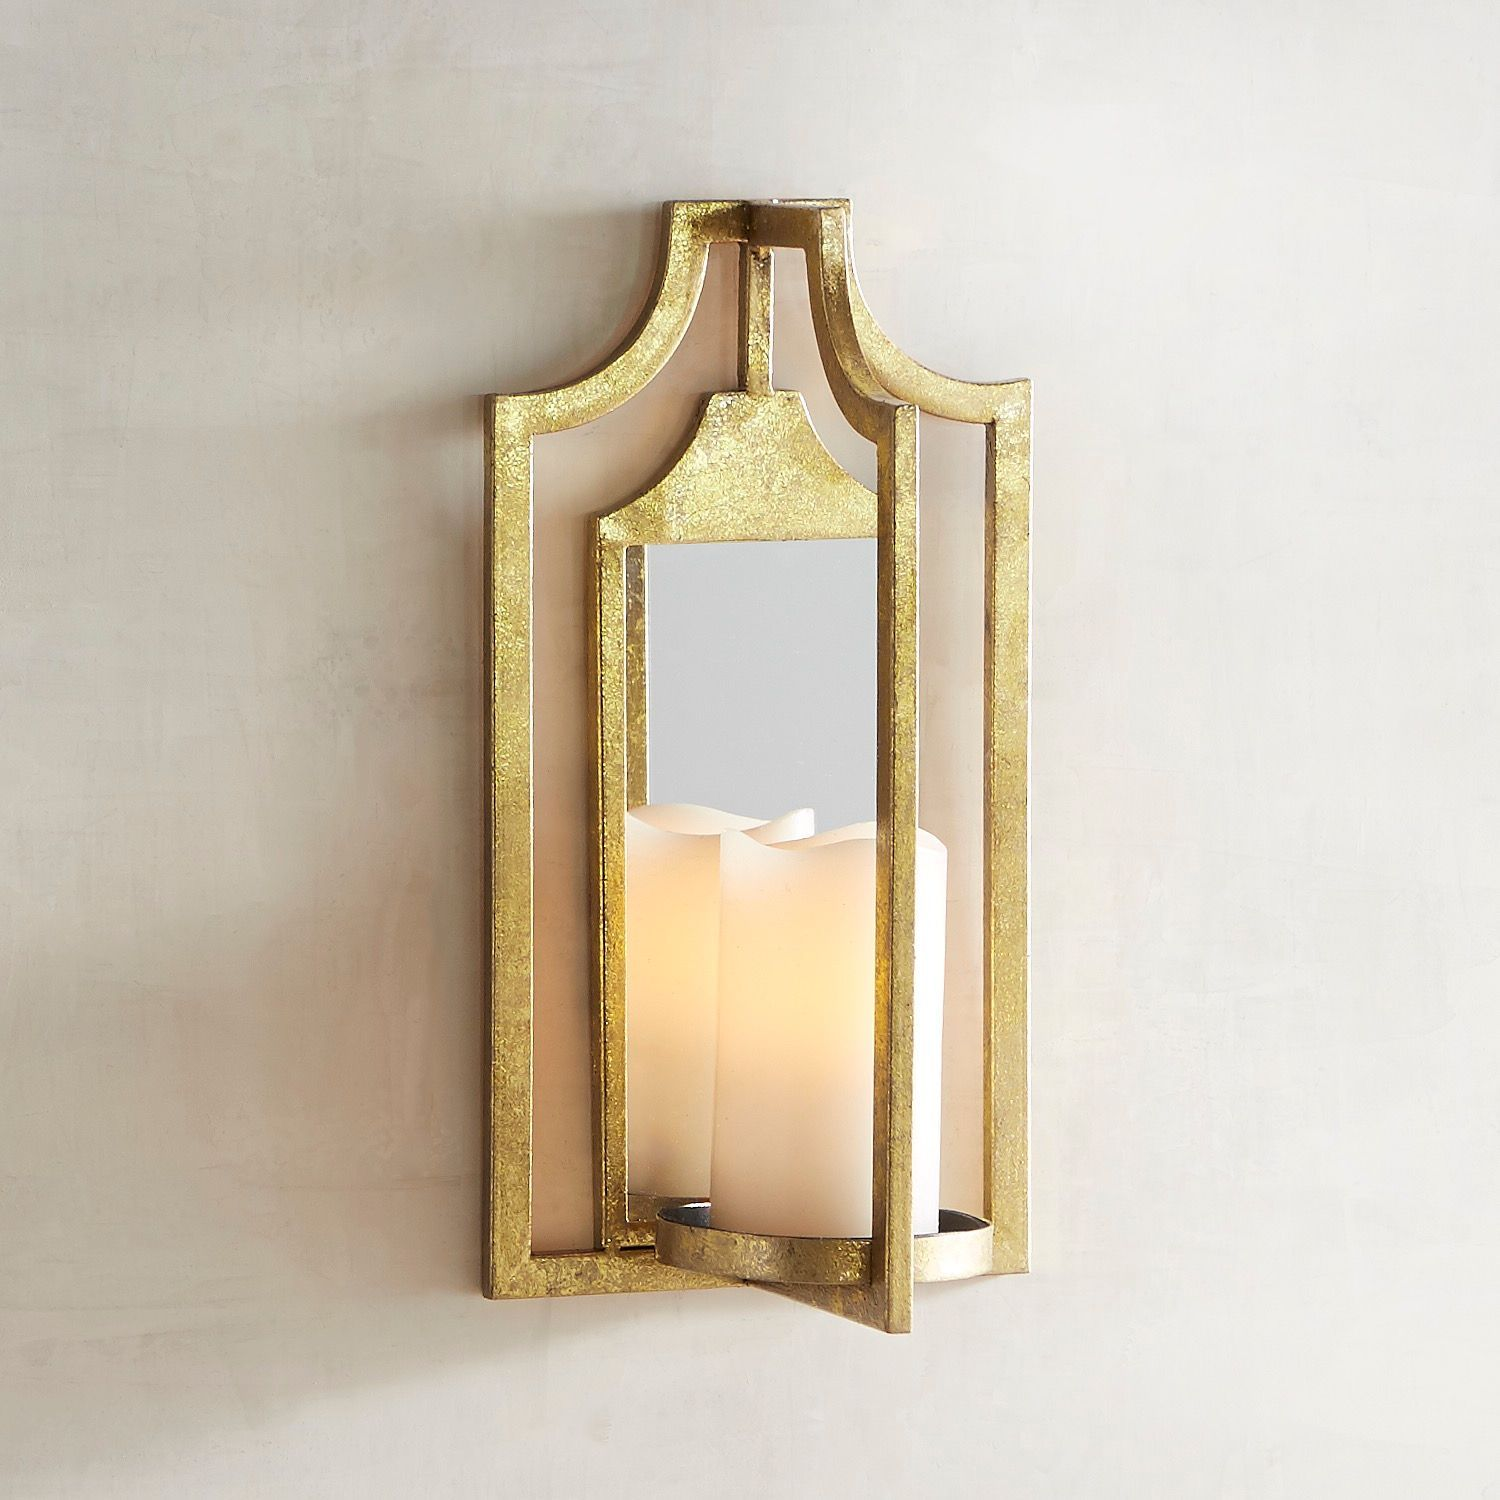 Wooden Vintage Style Antique Pewter Iron Hurricane Candle Holder Wall Sconce